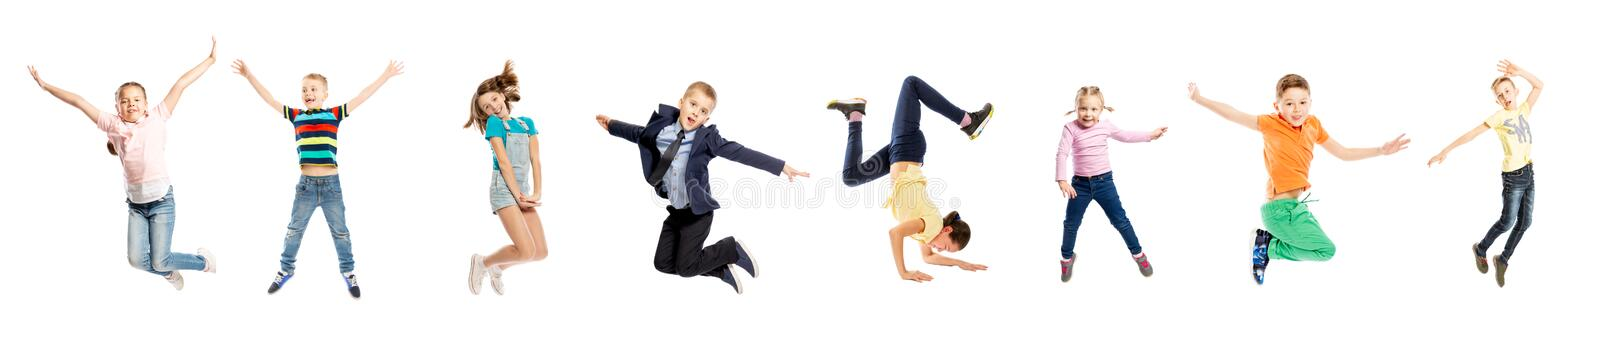 Set of images of jumping children of different sex and age. Isolated over white background. stock photos